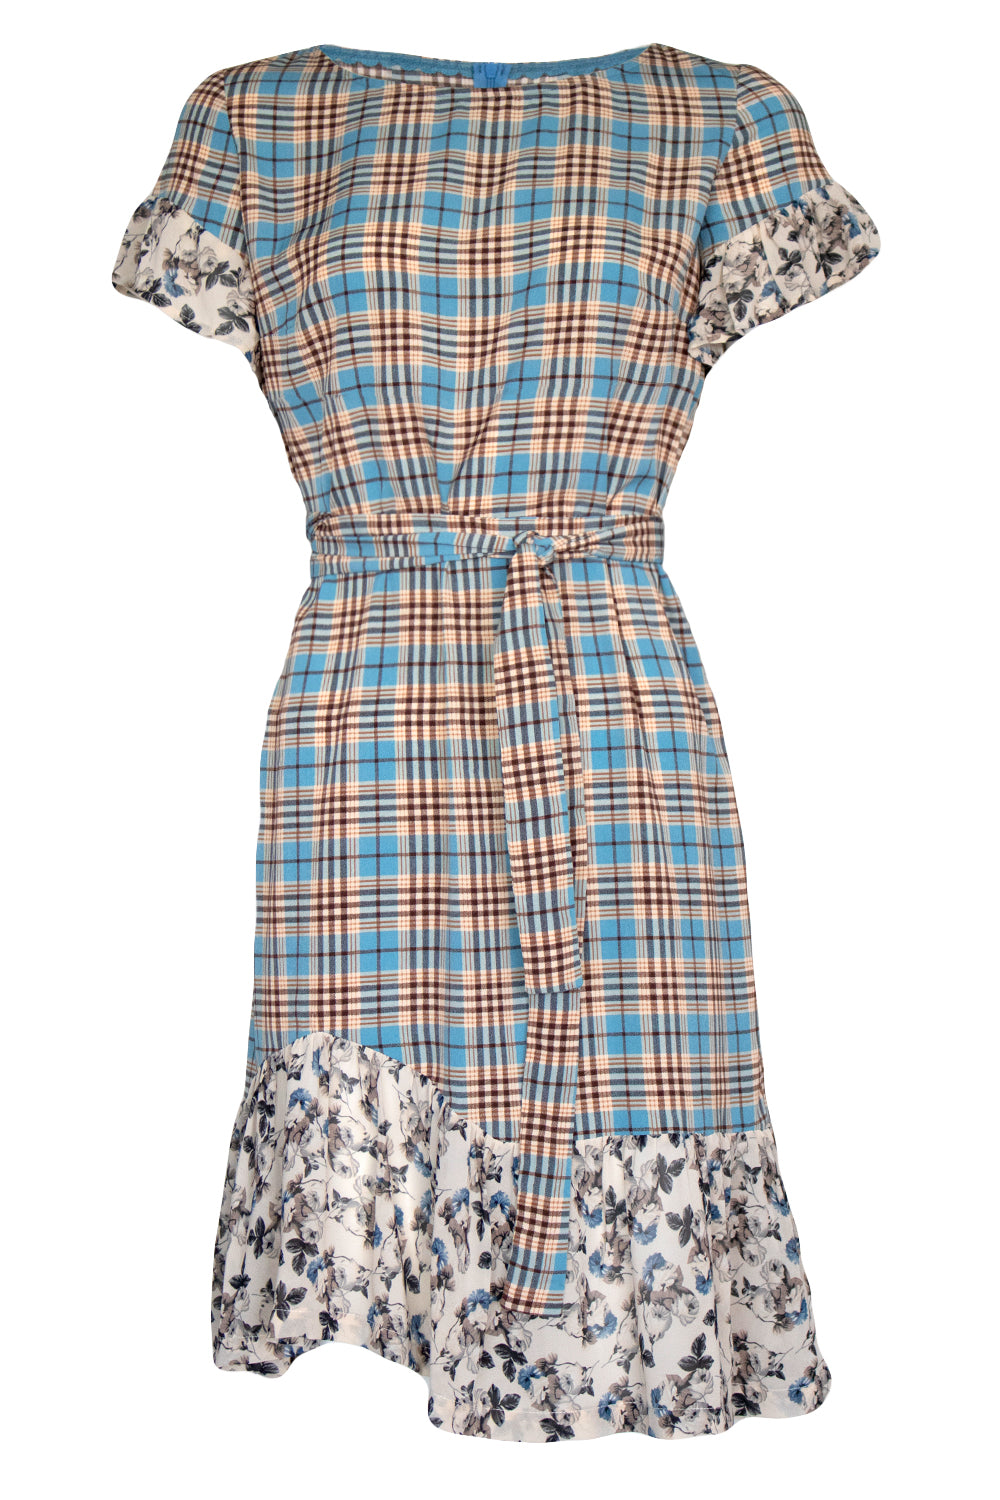 Ivy Dress - Plaid/Floral - SALE